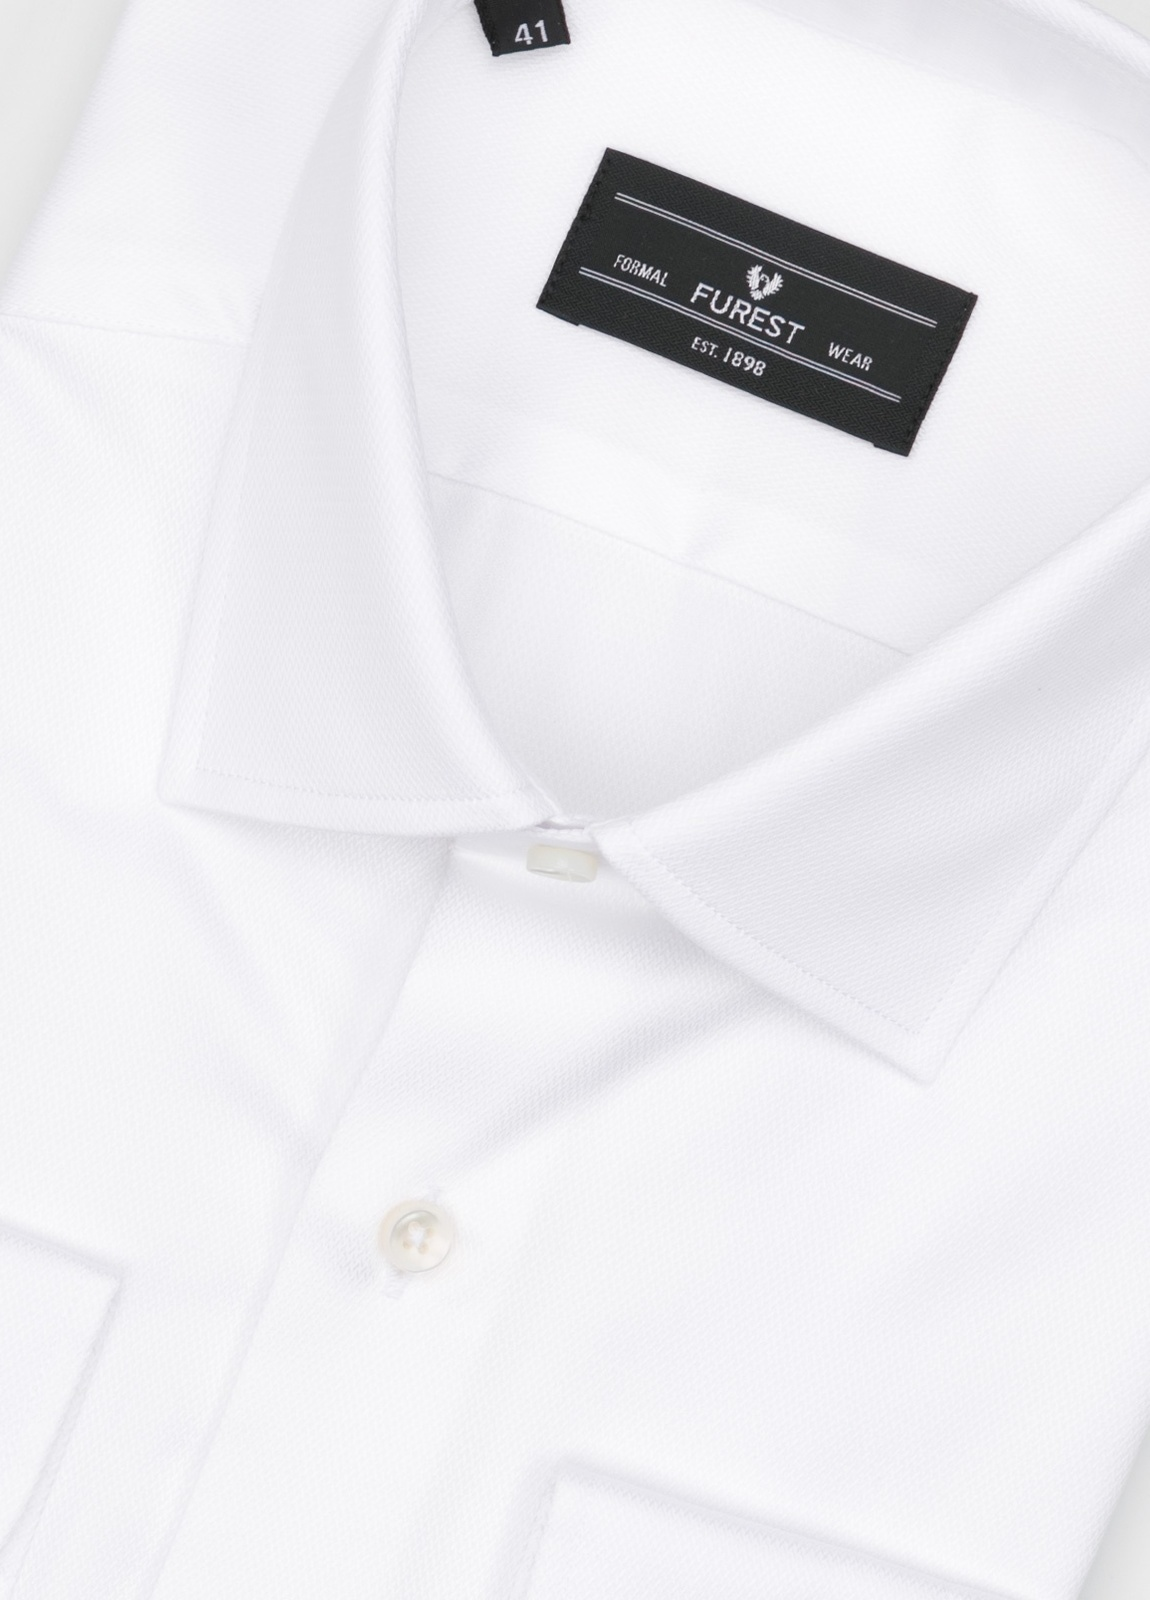 Camisa Formal Wear SLIM FIT cuello italiano modelo ROMA microtextura color blanco, 100% Algodón. - Ítem1